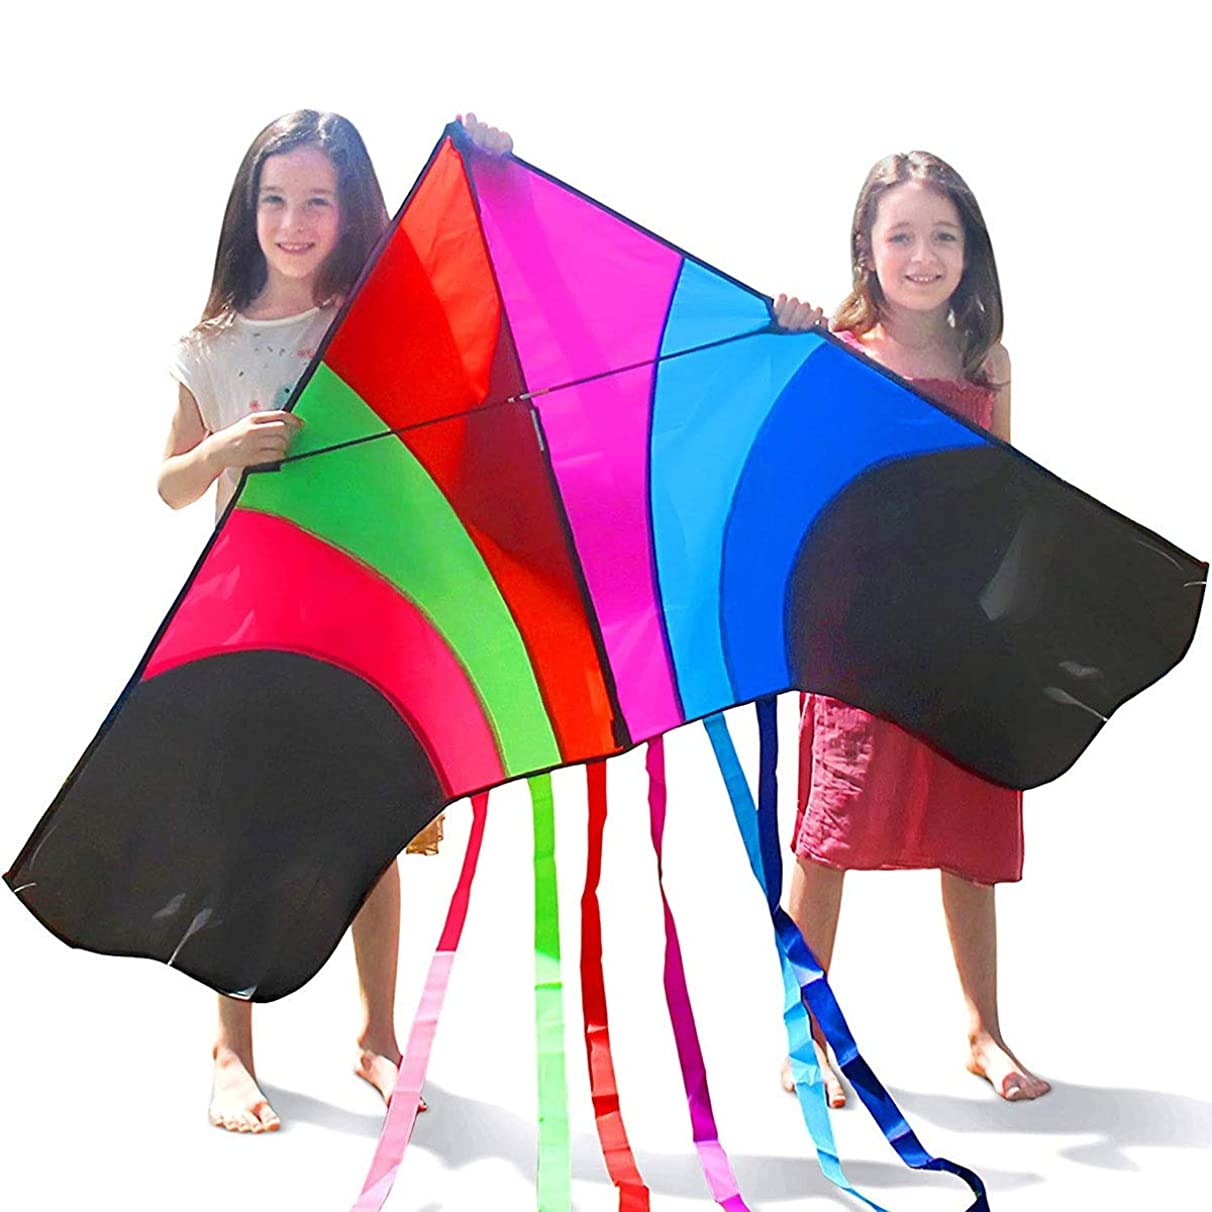 RMXMY Adult Large Cartoon Rainbow Kite Personality Fashion Creative Colorful Extra Large Anti-Wind Wind Easy to Fly Beginners Suitable for Adults and Children, Very Suitable for Family Entertainment,